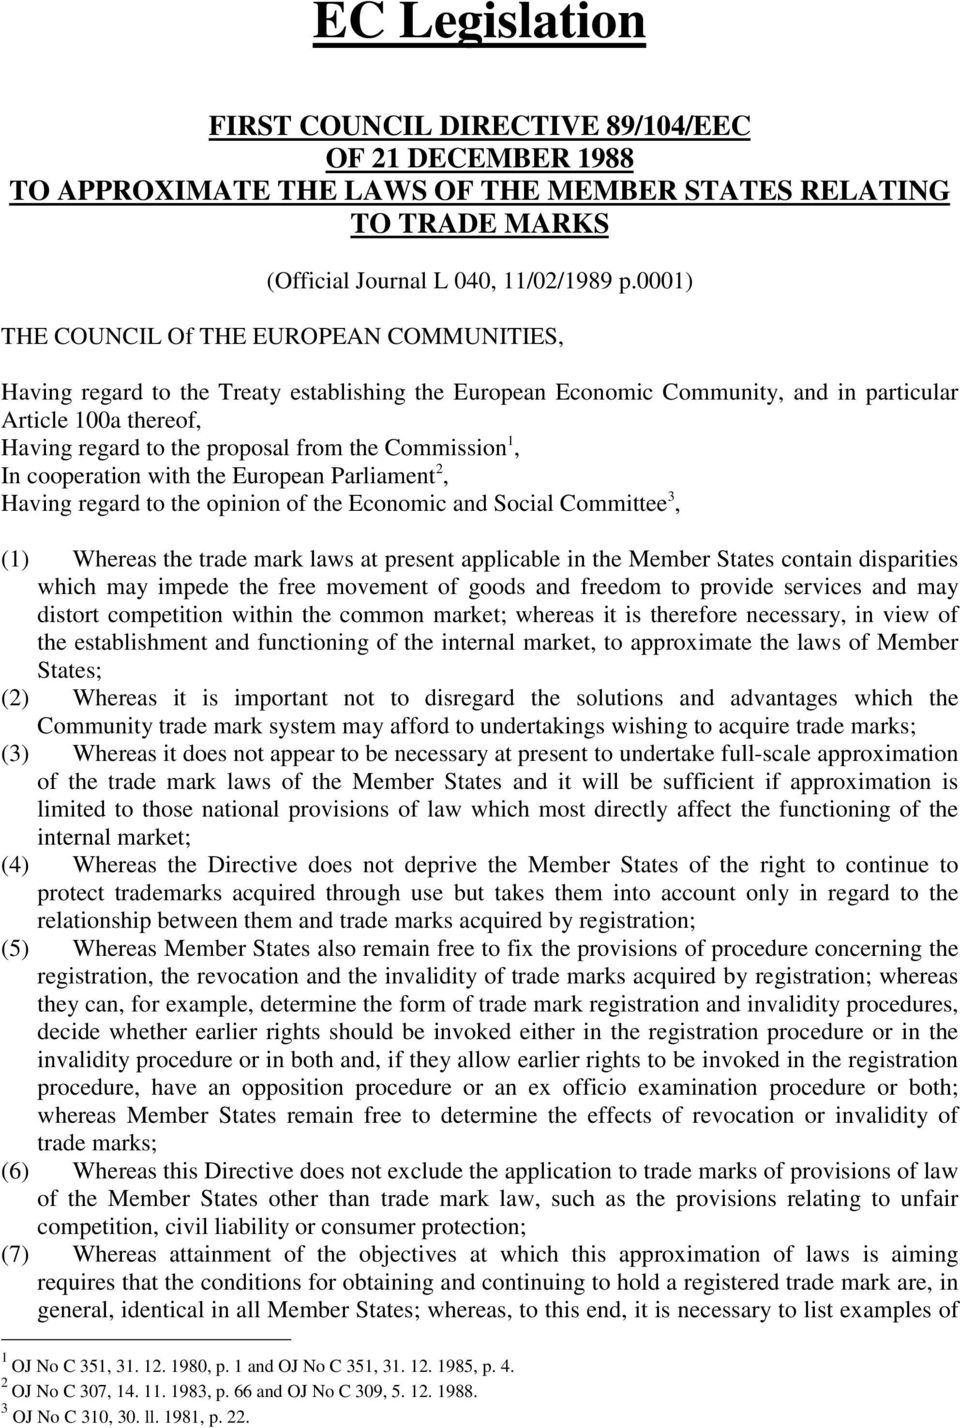 Commission 1, In cooperation with the European Parliament 2, Having regard to the opinion of the Economic and Social Committee 3, (1) Whereas the trade mark laws at present applicable in the Member